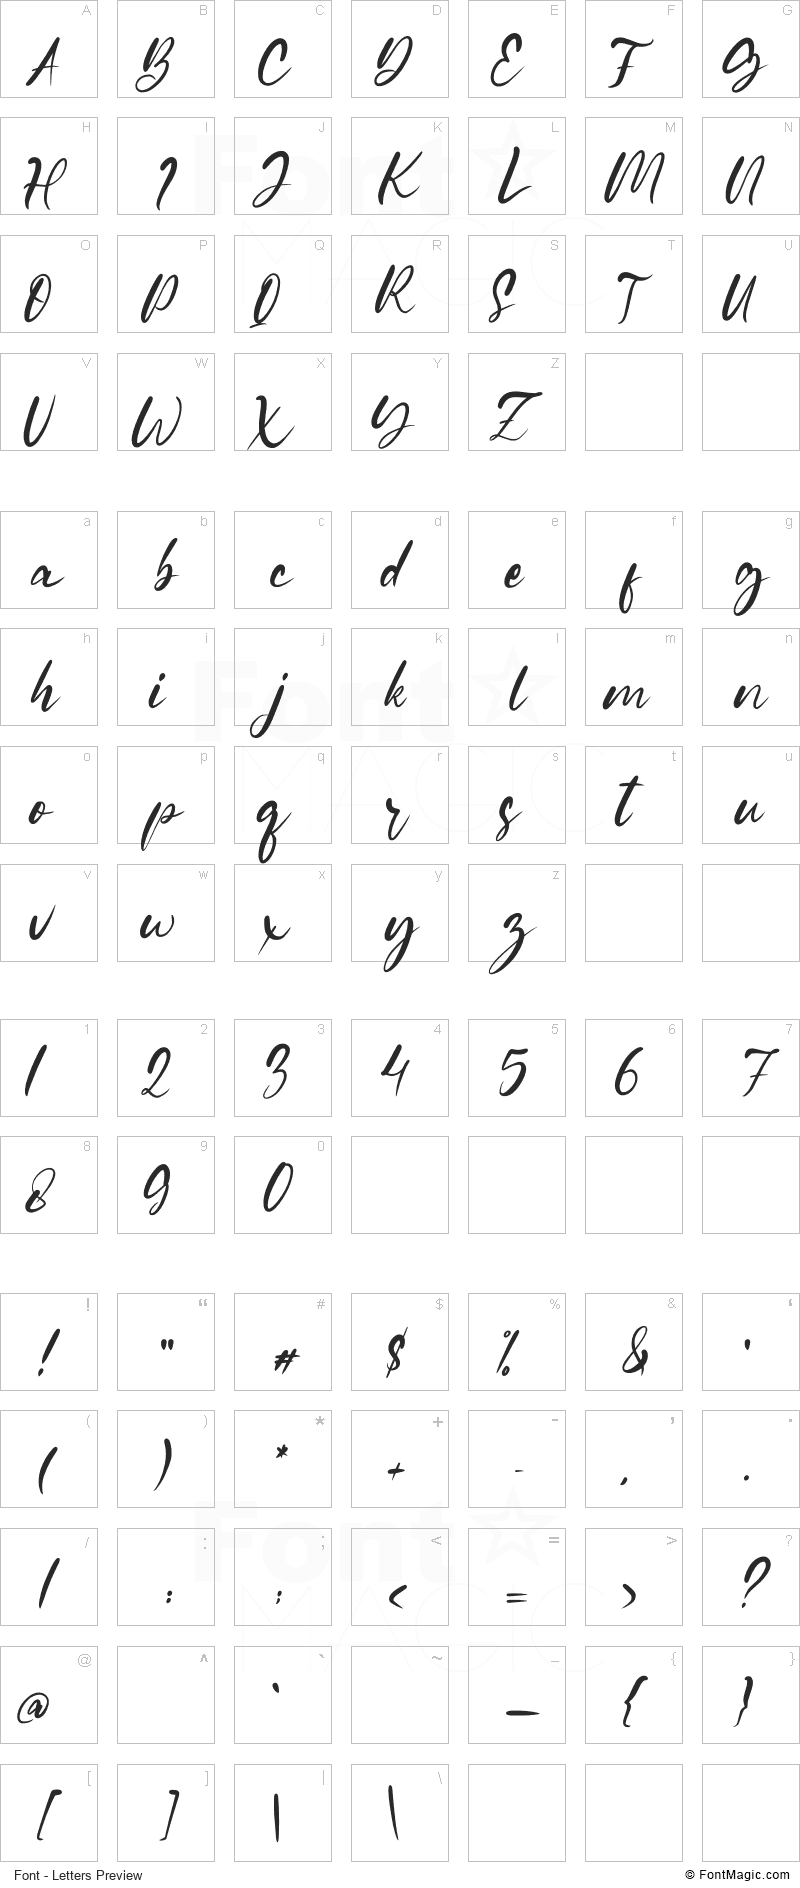 Gianella Font - All Latters Preview Chart